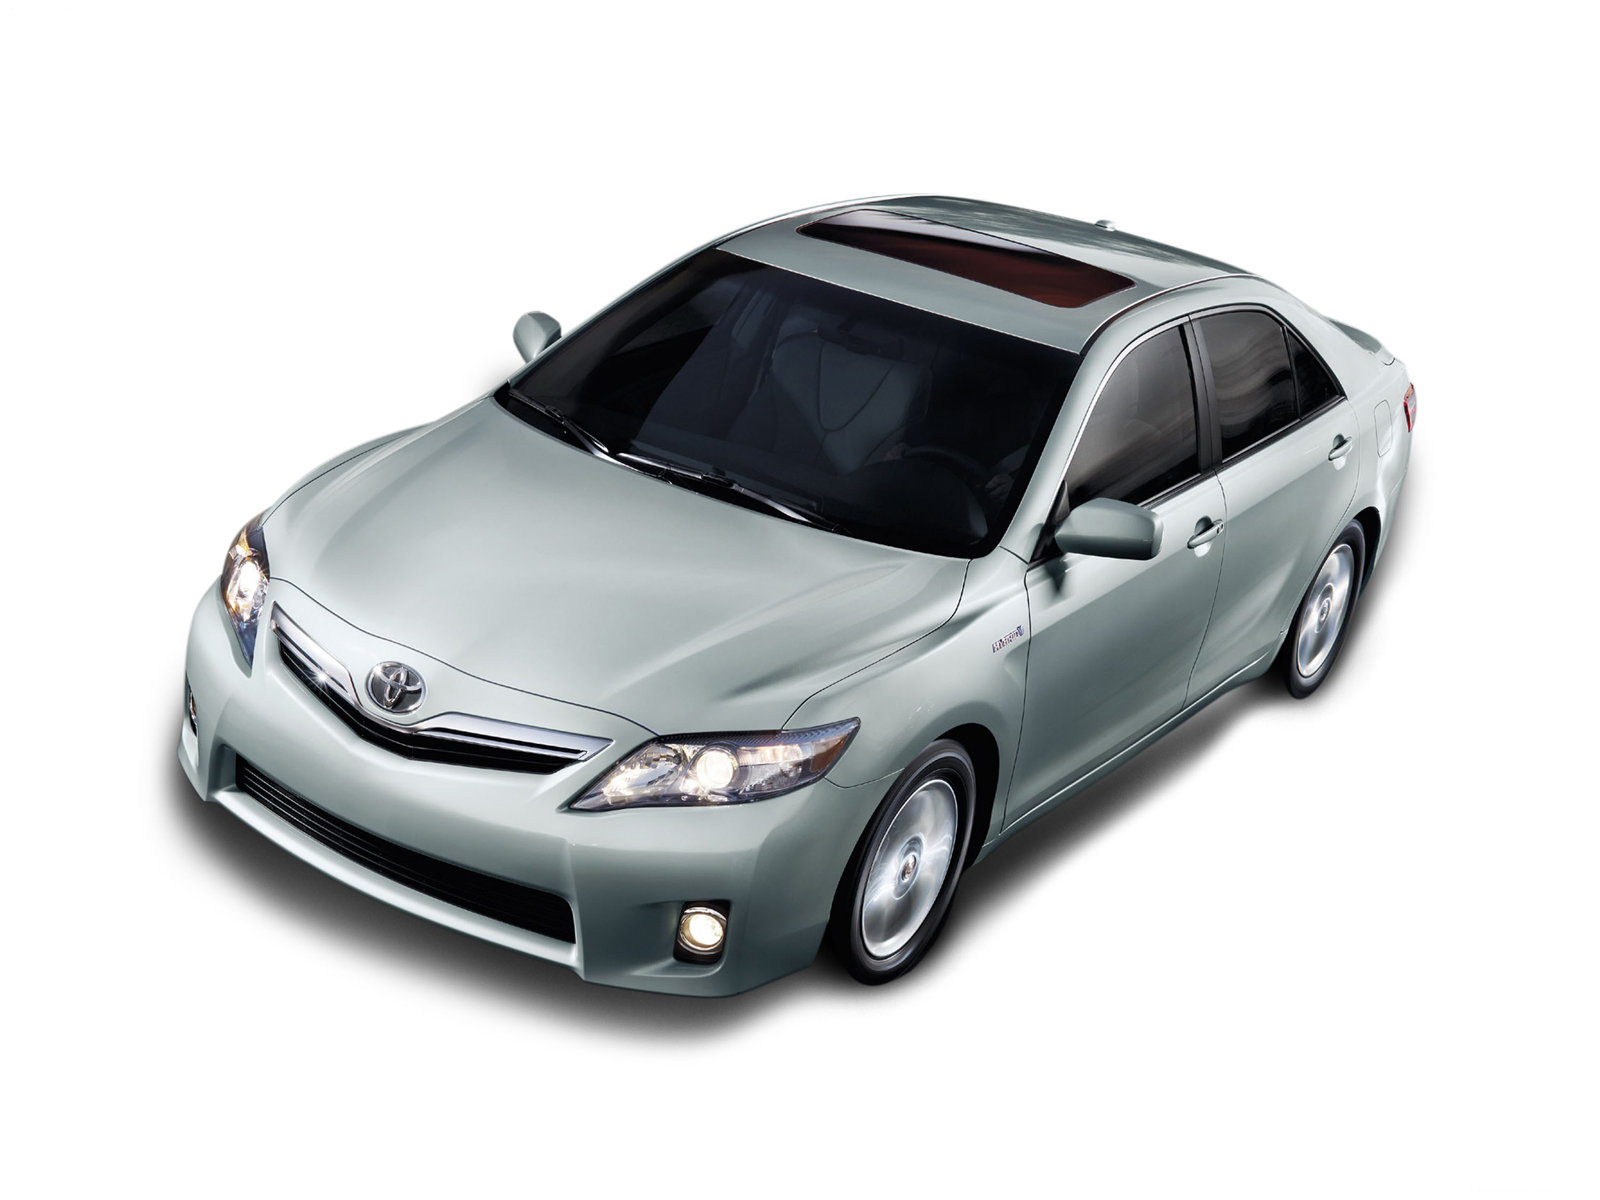 2010 TOYOTA Camry Car Pictures